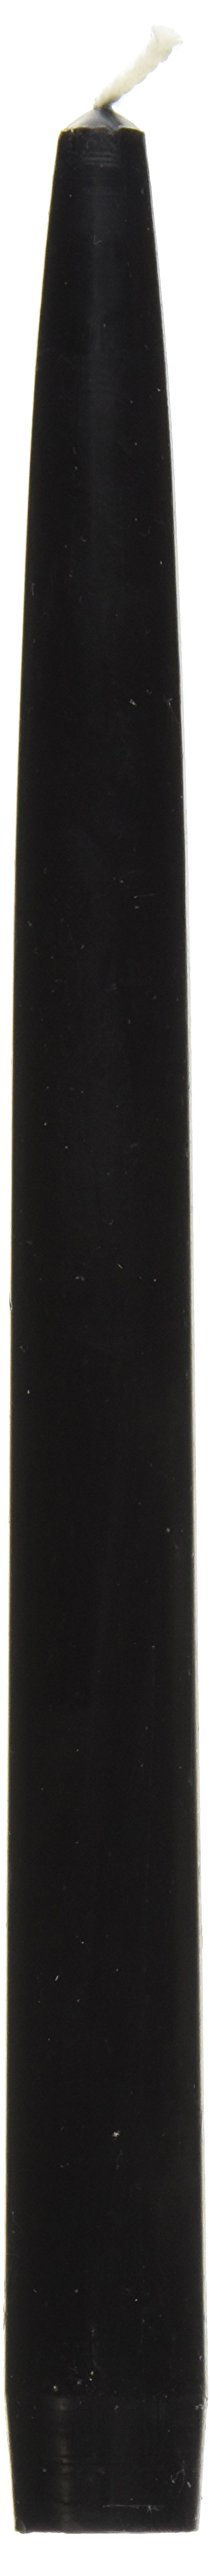 Zest Candle 12-Piece Taper Candles, 10-Inch, Black